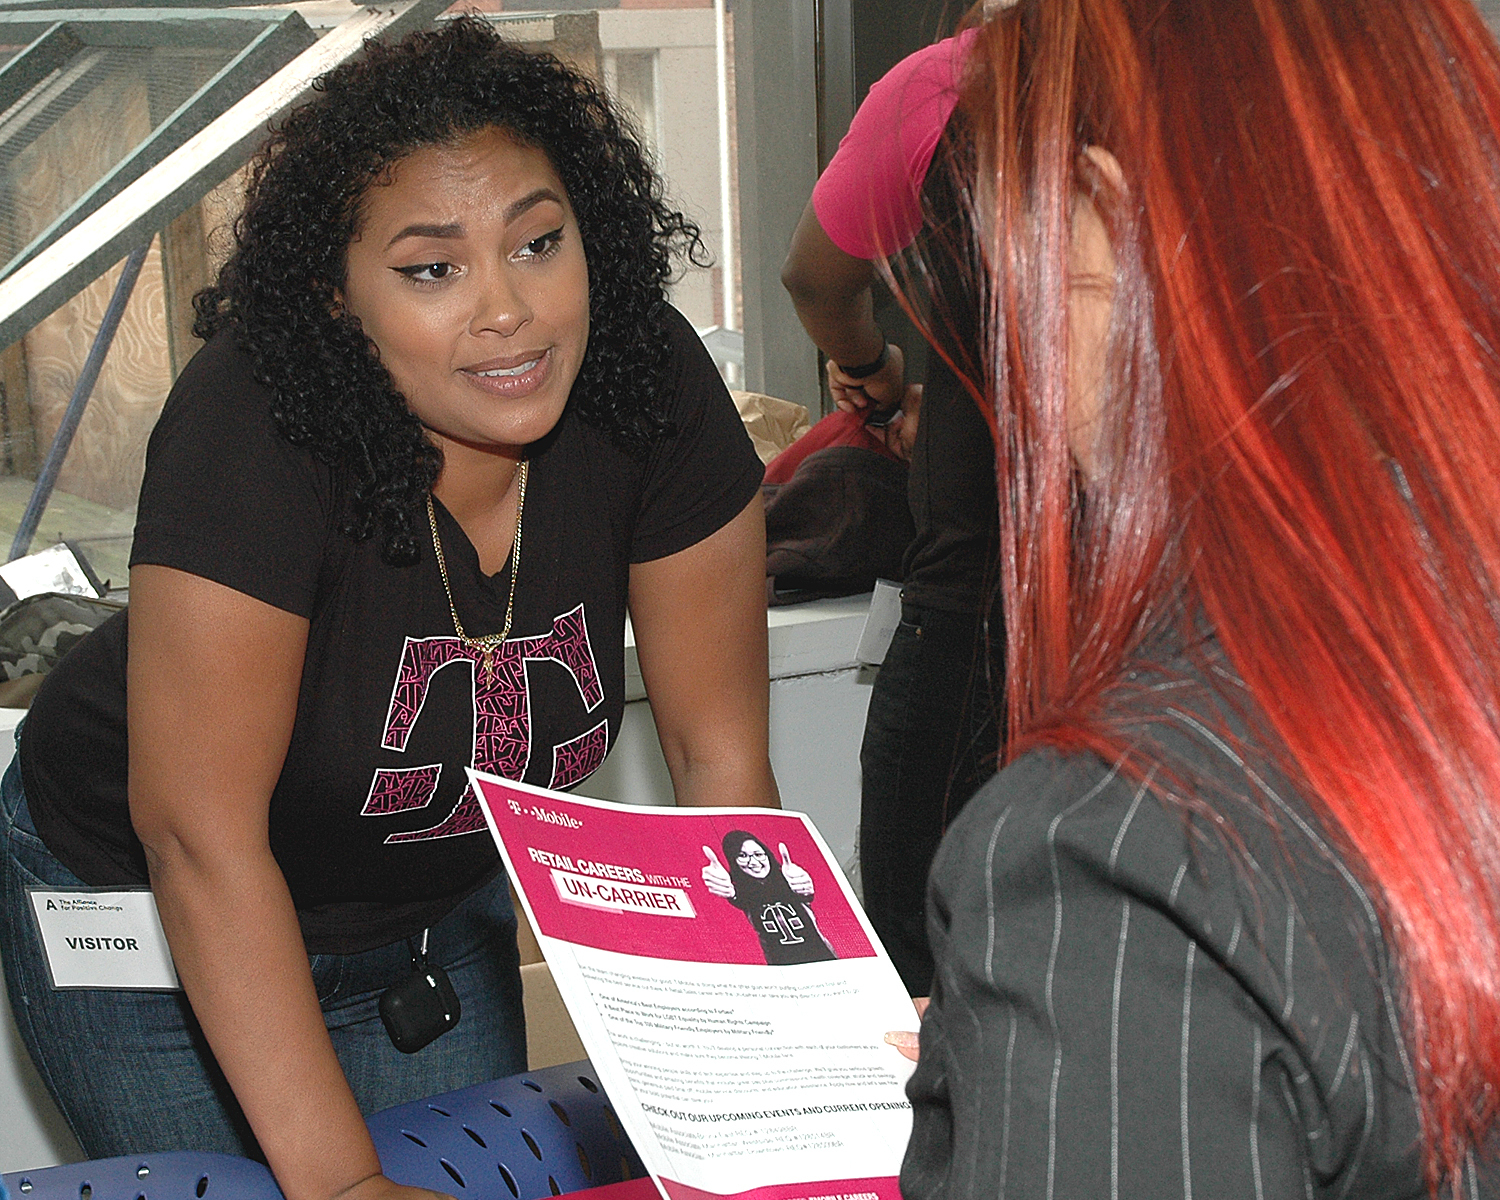 An interviewer from T-Mobile with an attendee